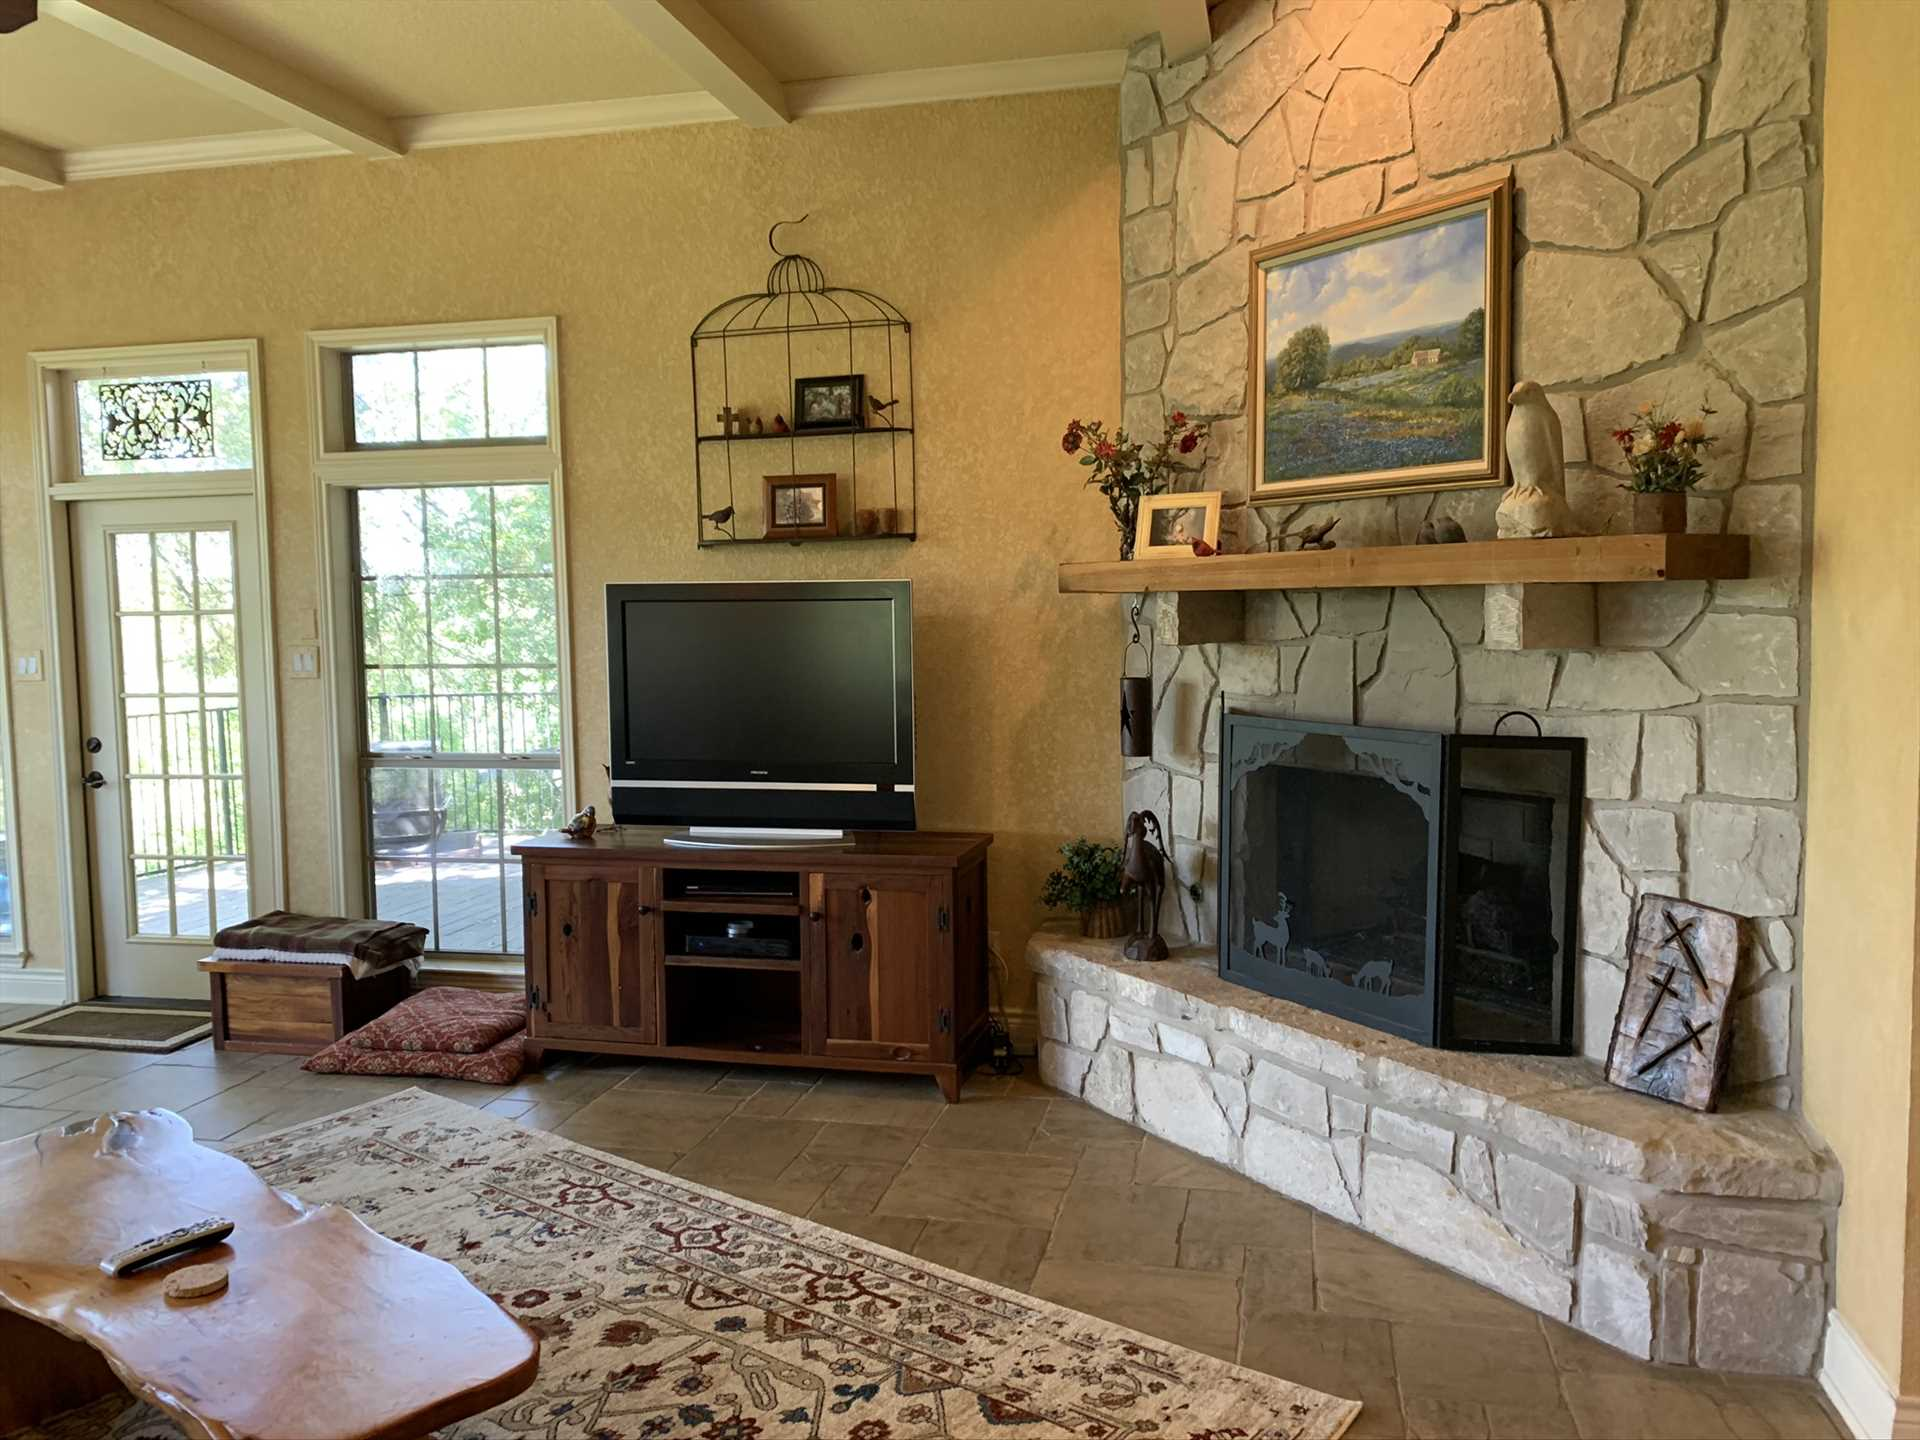 Your tech amenities here include smart TV with cable, Wifi Internet service, and central air and heat for year-round comfort.